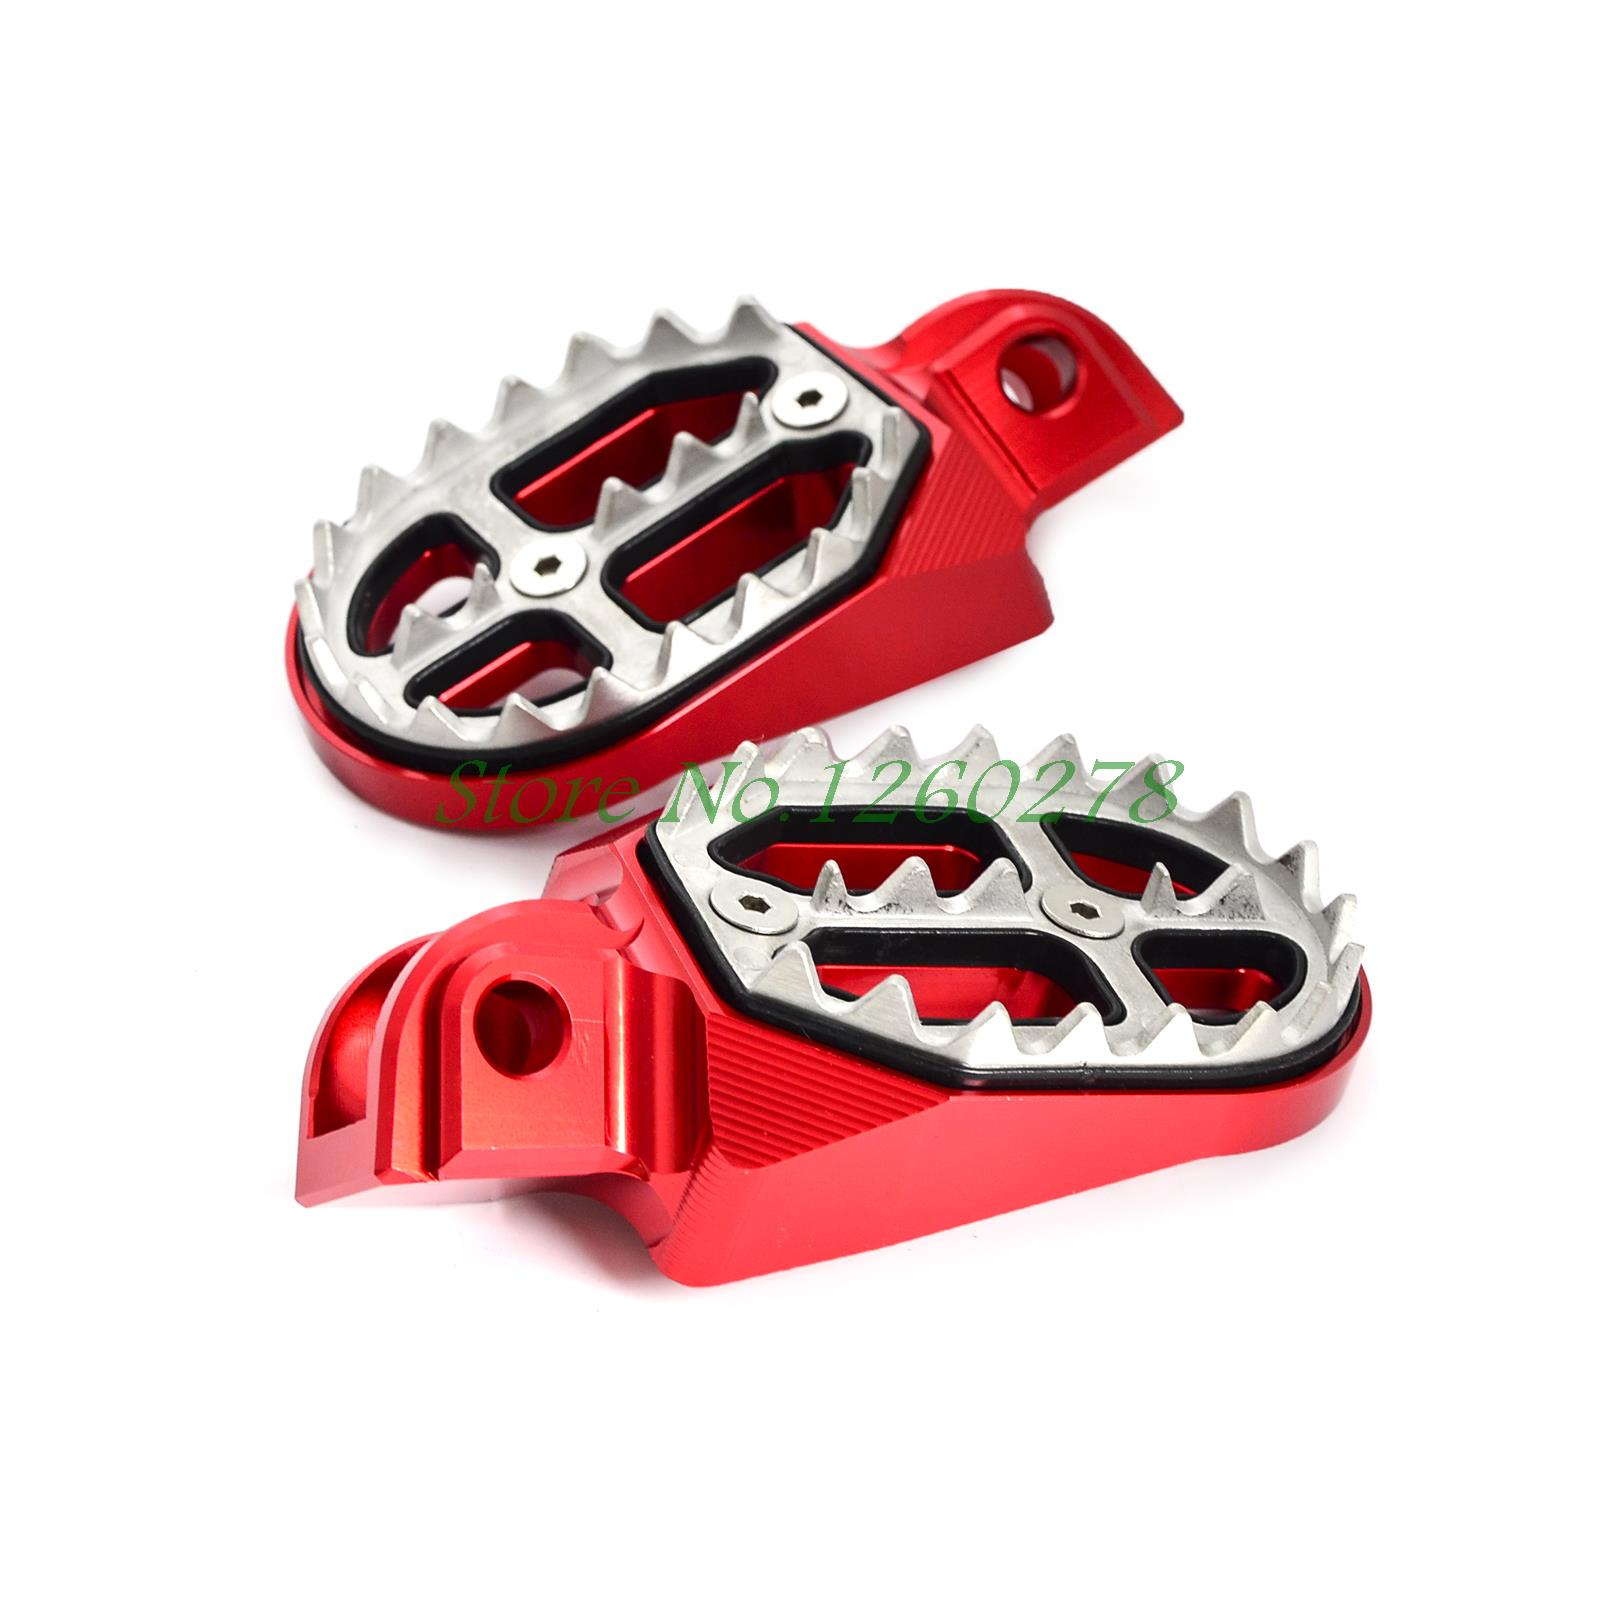 Billet MX Foot Pegs Rests Pedals For Beta 250RR 300RR 350RR 390RR 450RR 480RR 520RR 2T